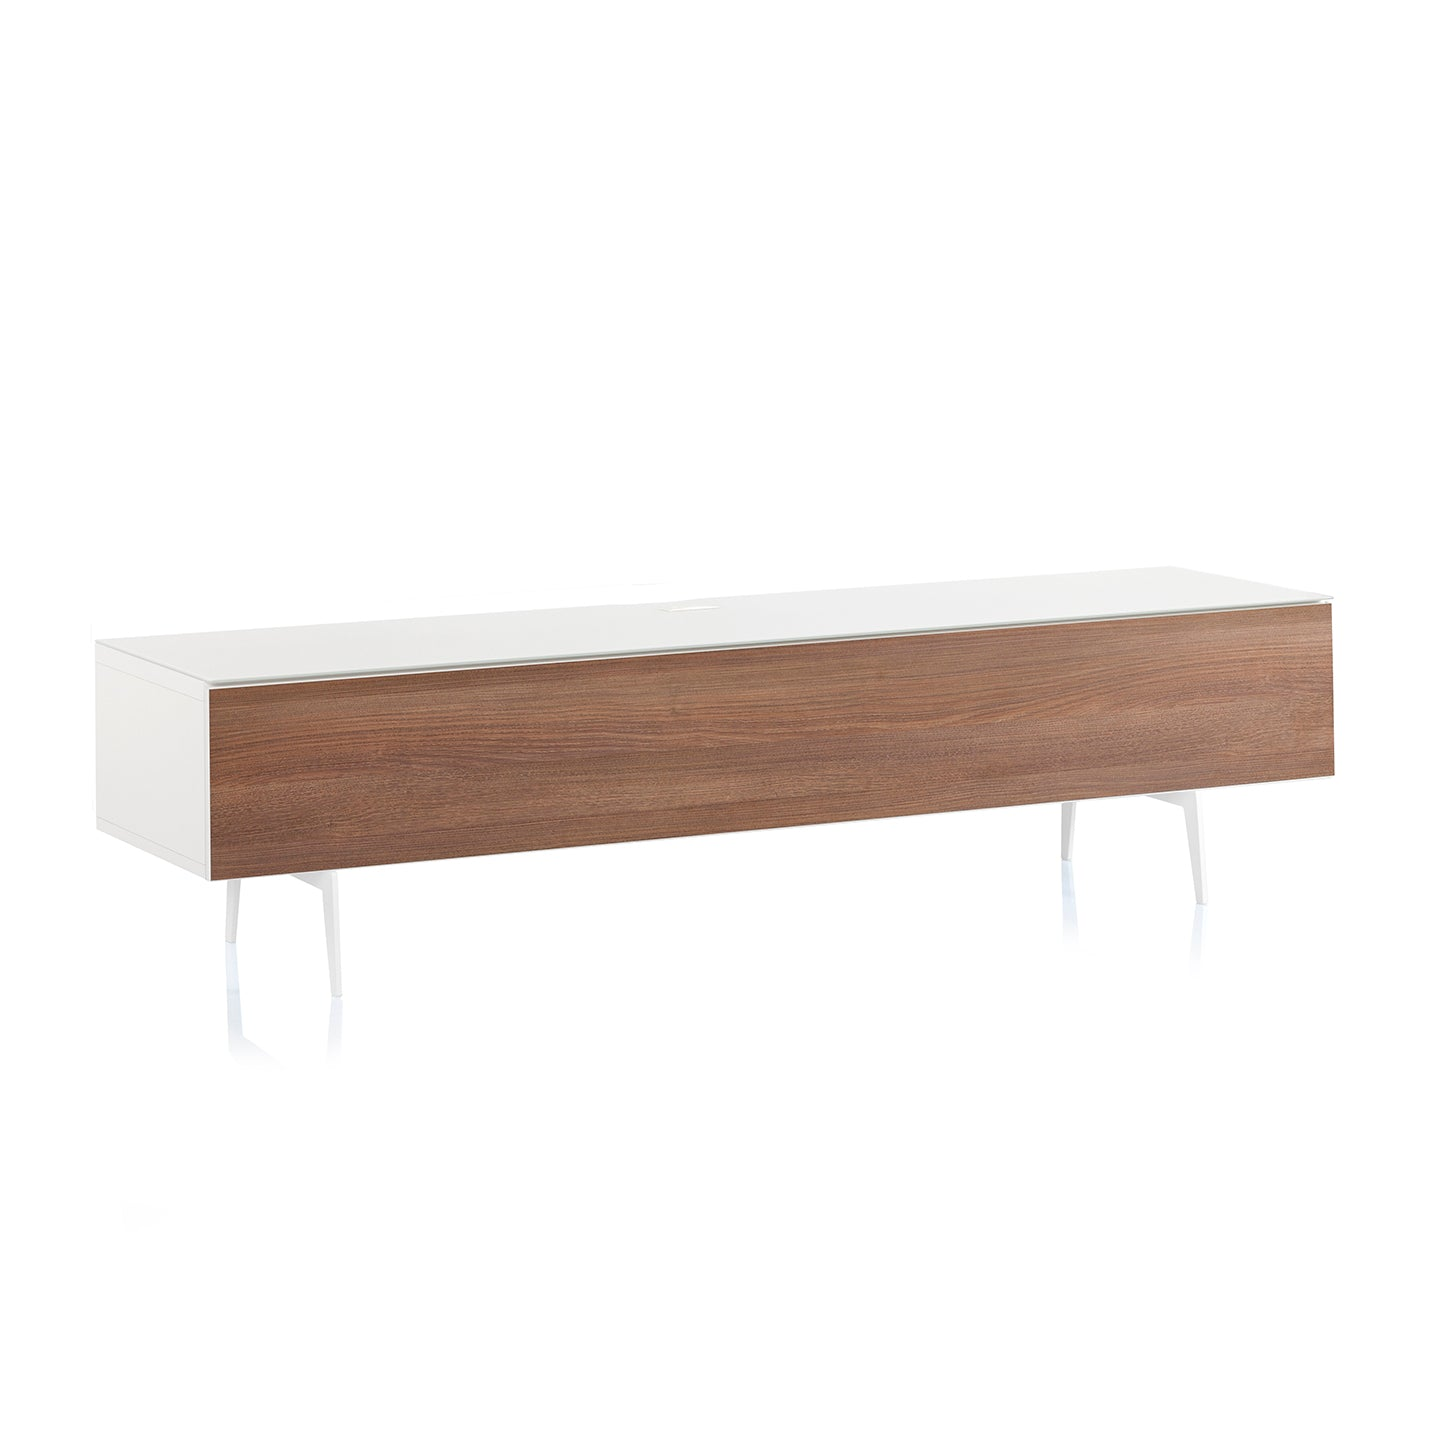 "Sonorous Studio ST360 Modern TV Stand w/ Spike Legs for TVs up to 75"" - White / Walnut Wood Cover"